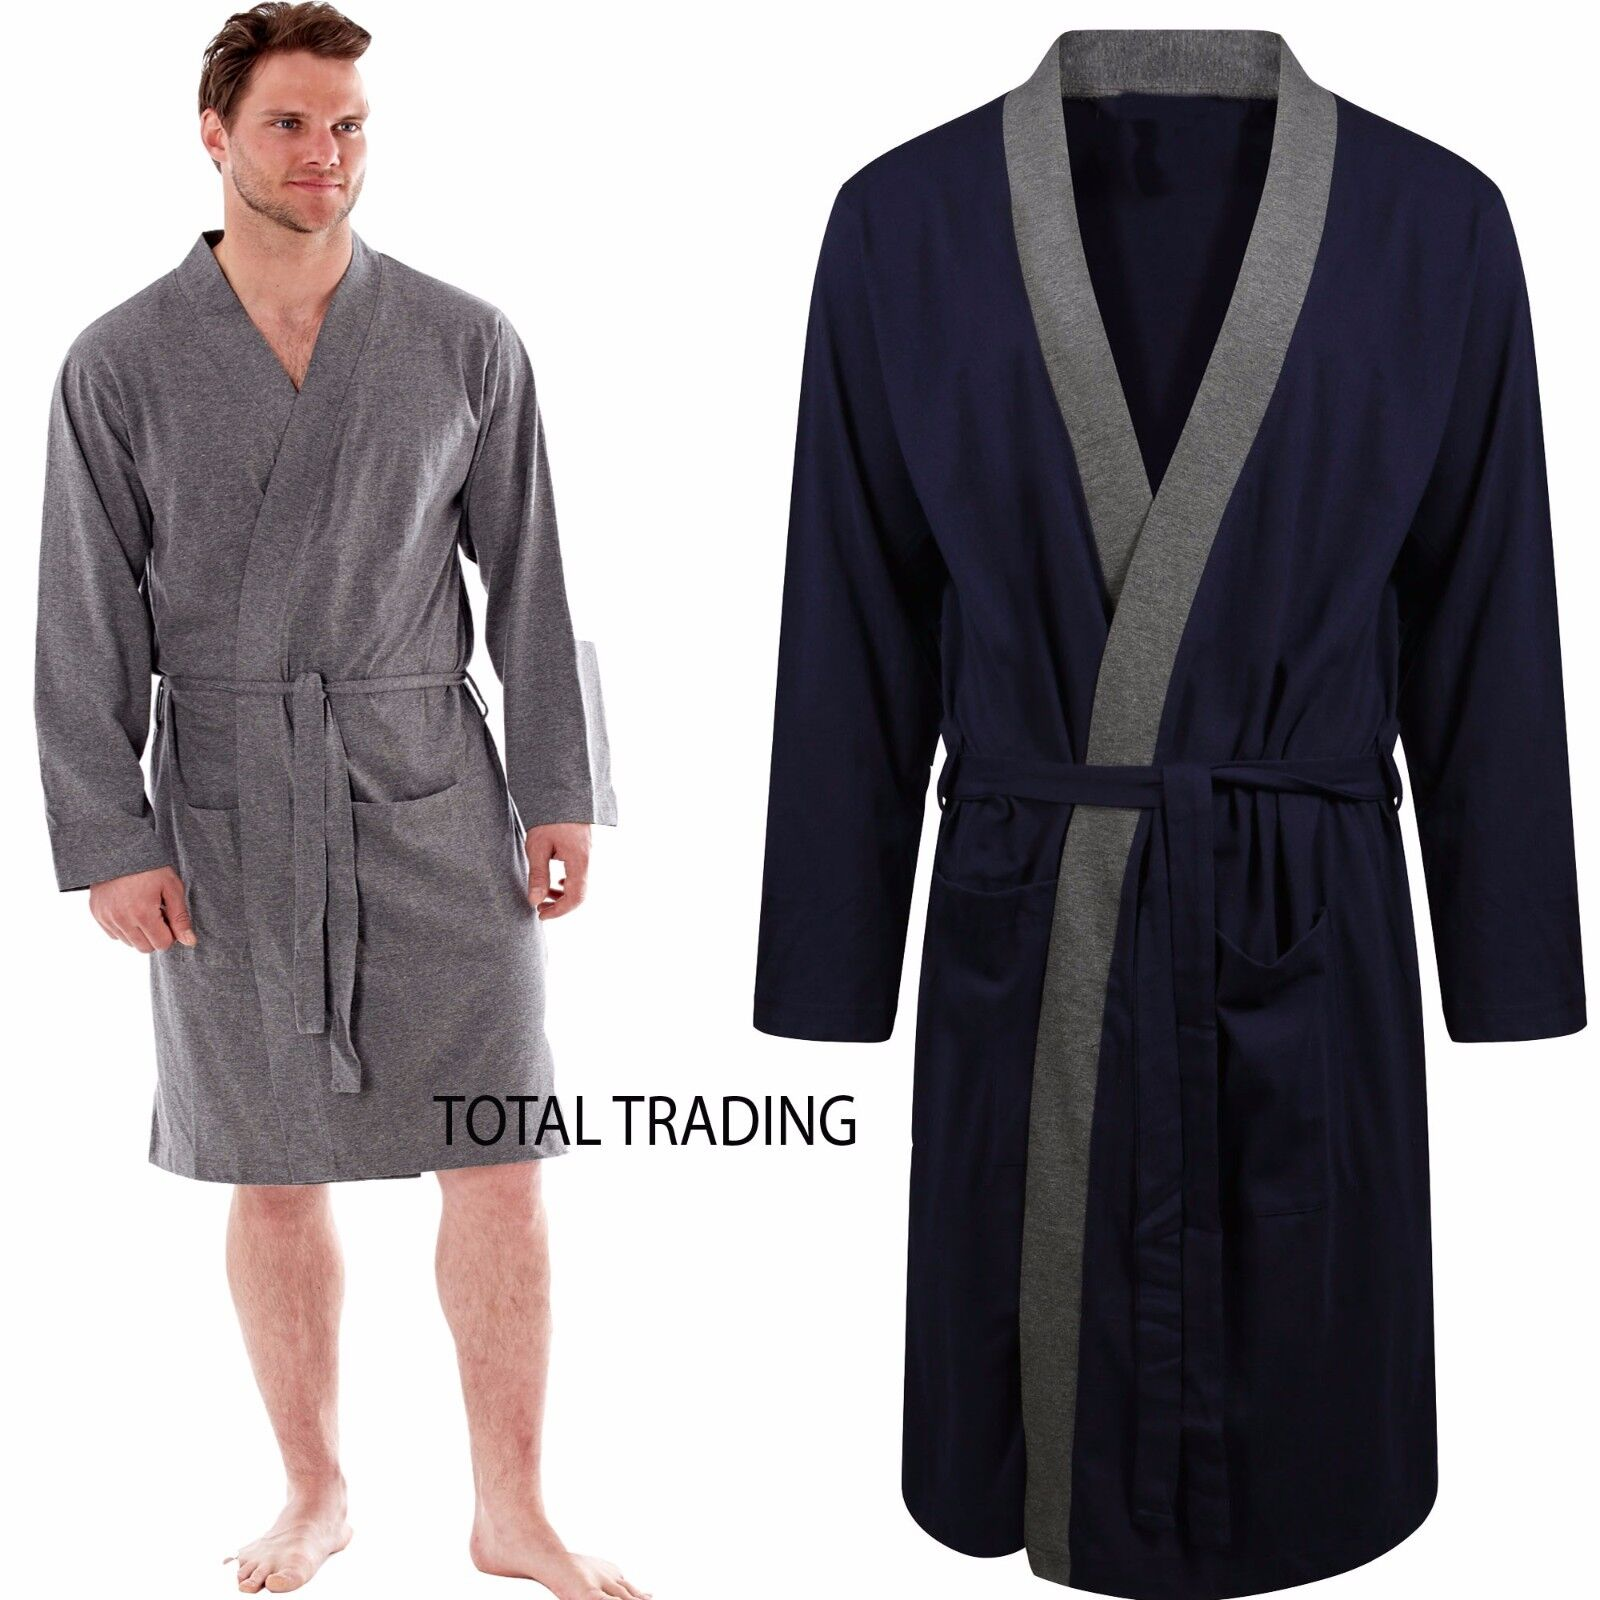 c6d143fedc Mens Dressing Gown Gowns Robe Cotton rich Jersey Summer Lighweight dx